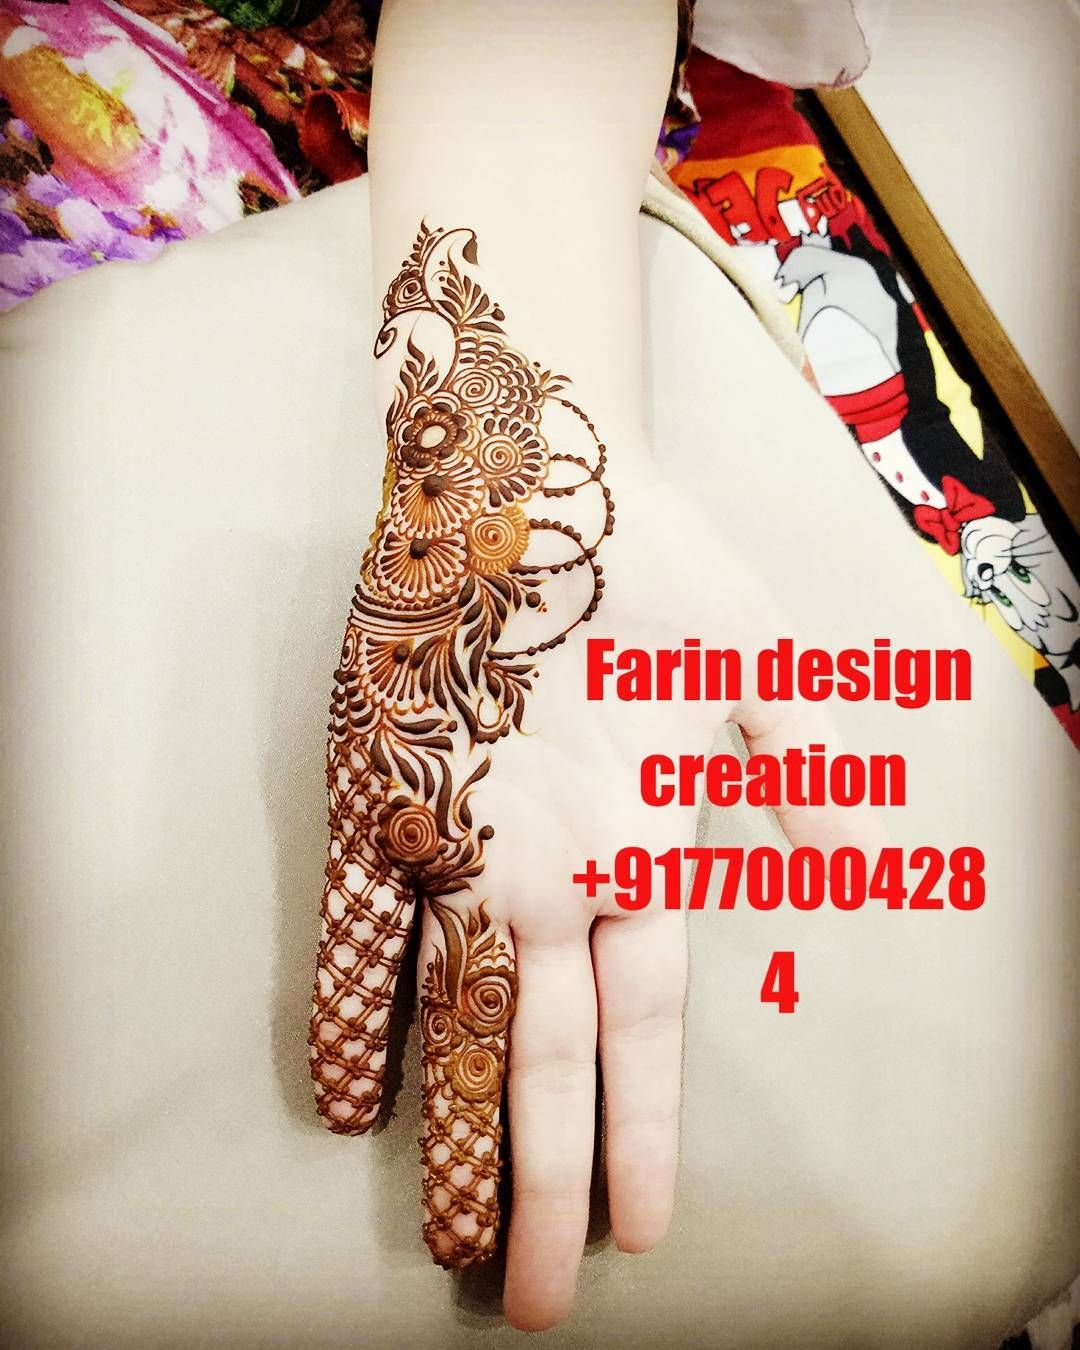 Image May Contain 1 Person Hand Henna Mehndi Designs Henna Designs